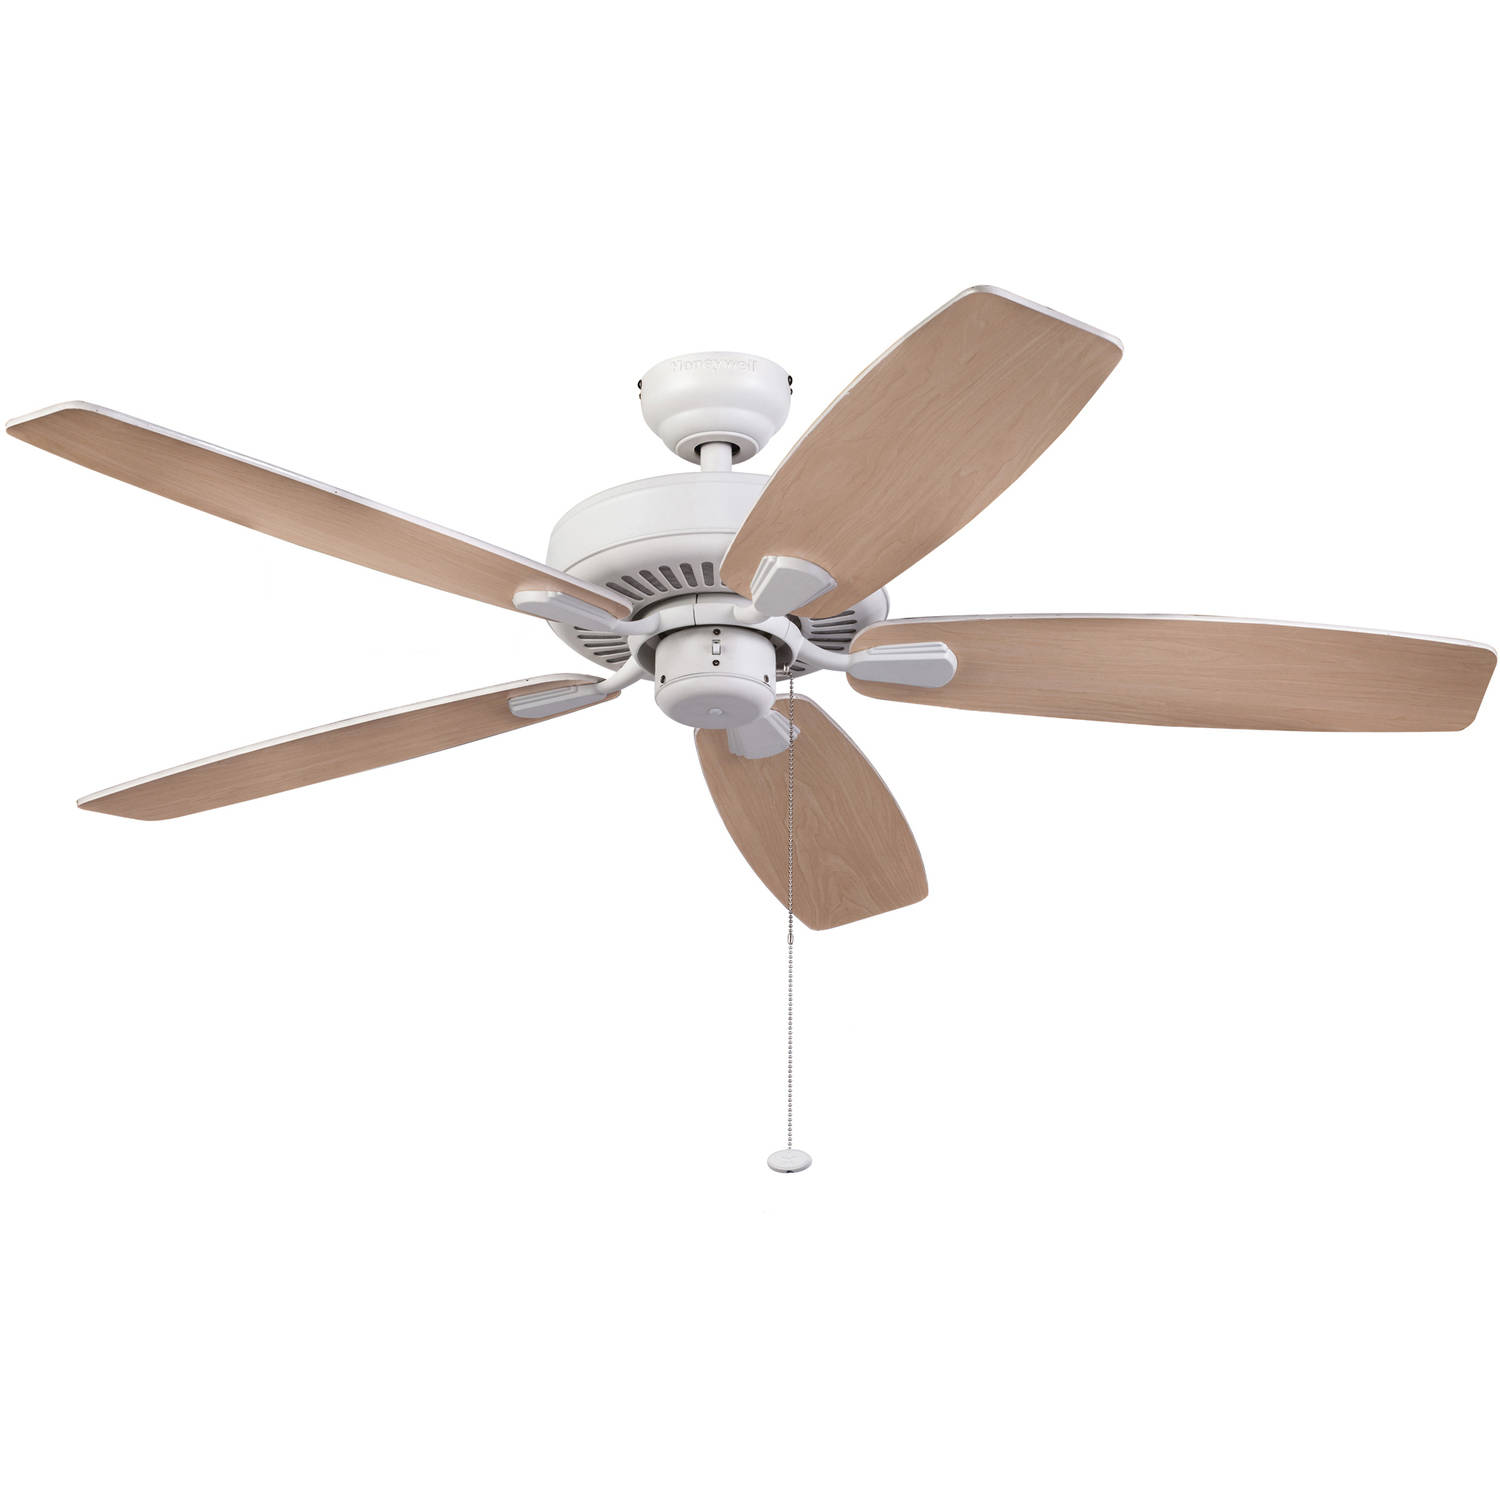 "52"" Honeywell Blufton Outdoor Ceiling Fan White Walmart"